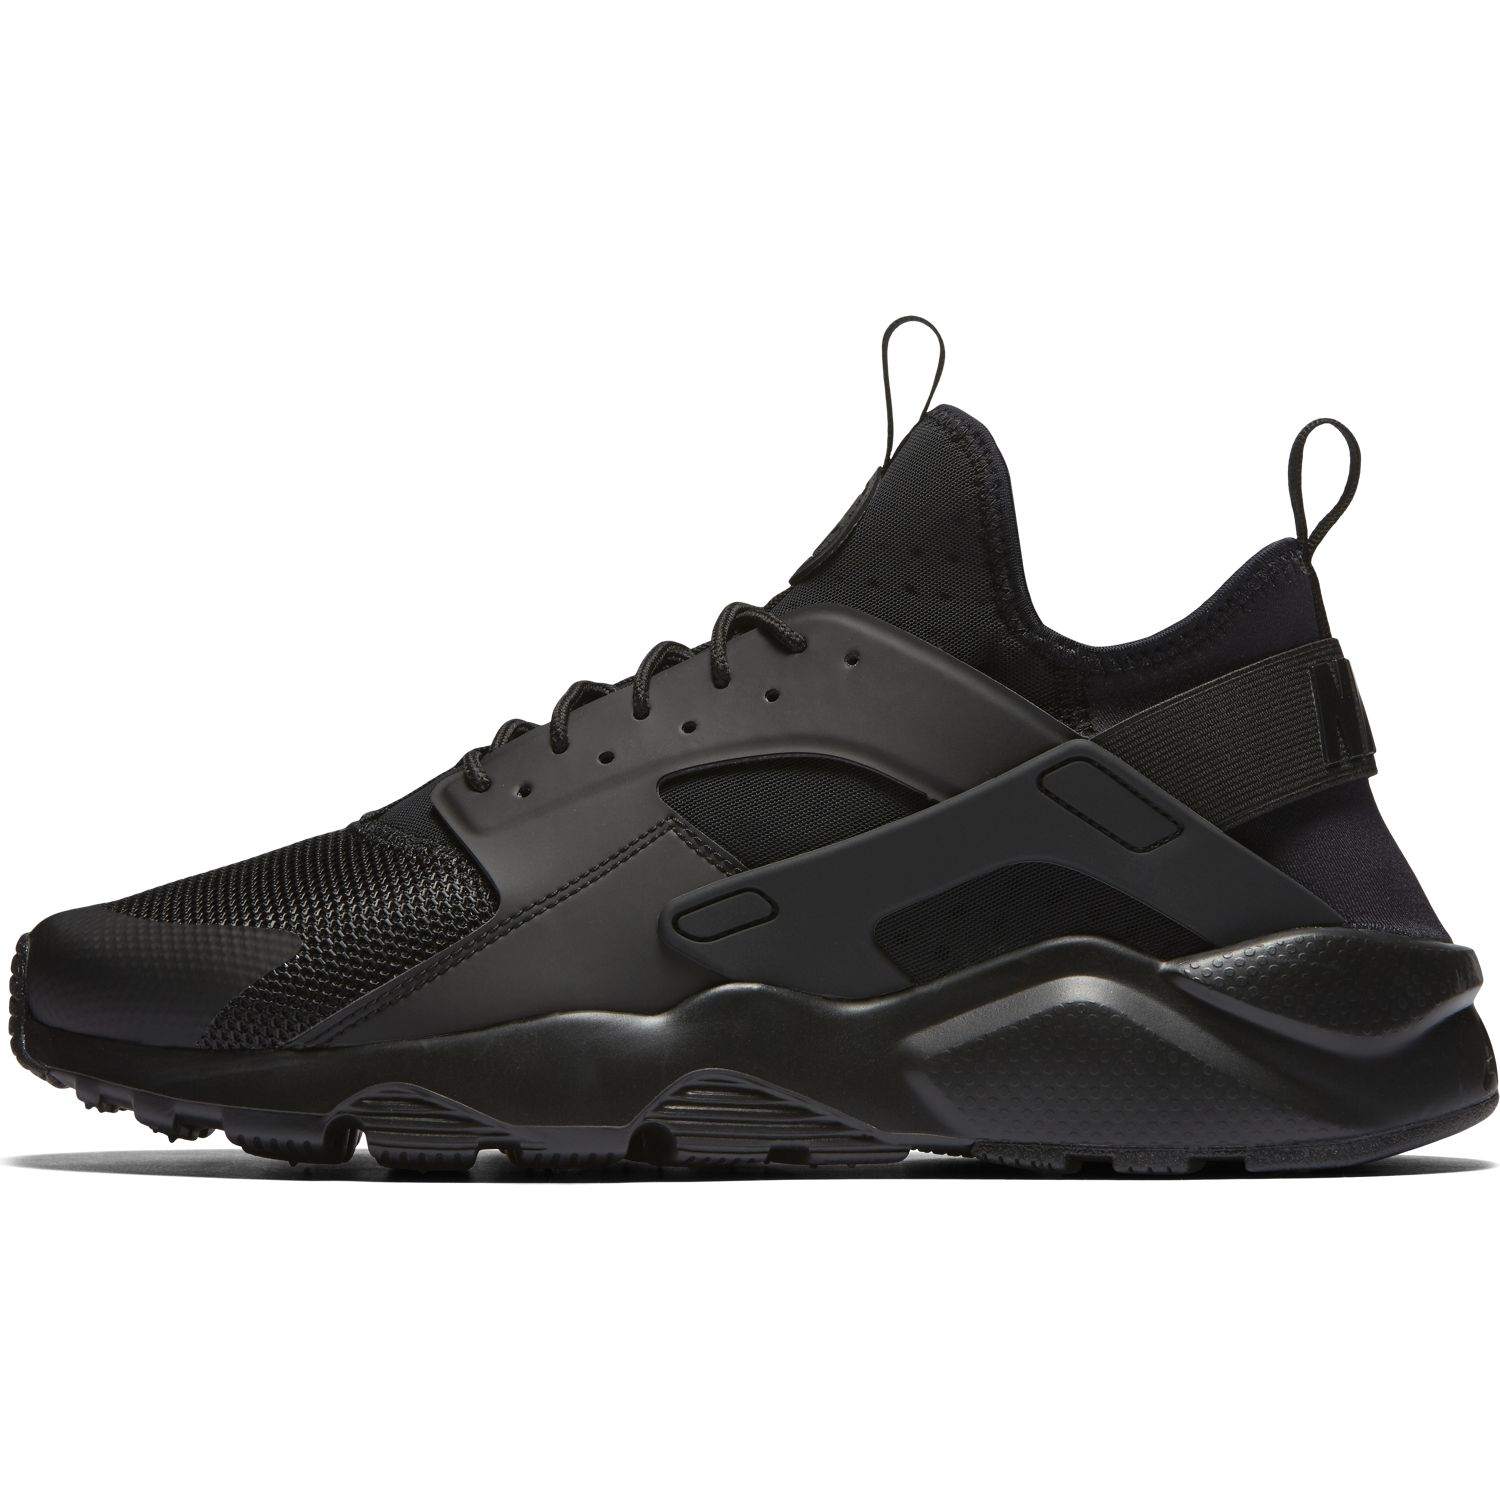 Nike Air Huarache Run Ultra Triple Black 819685 002